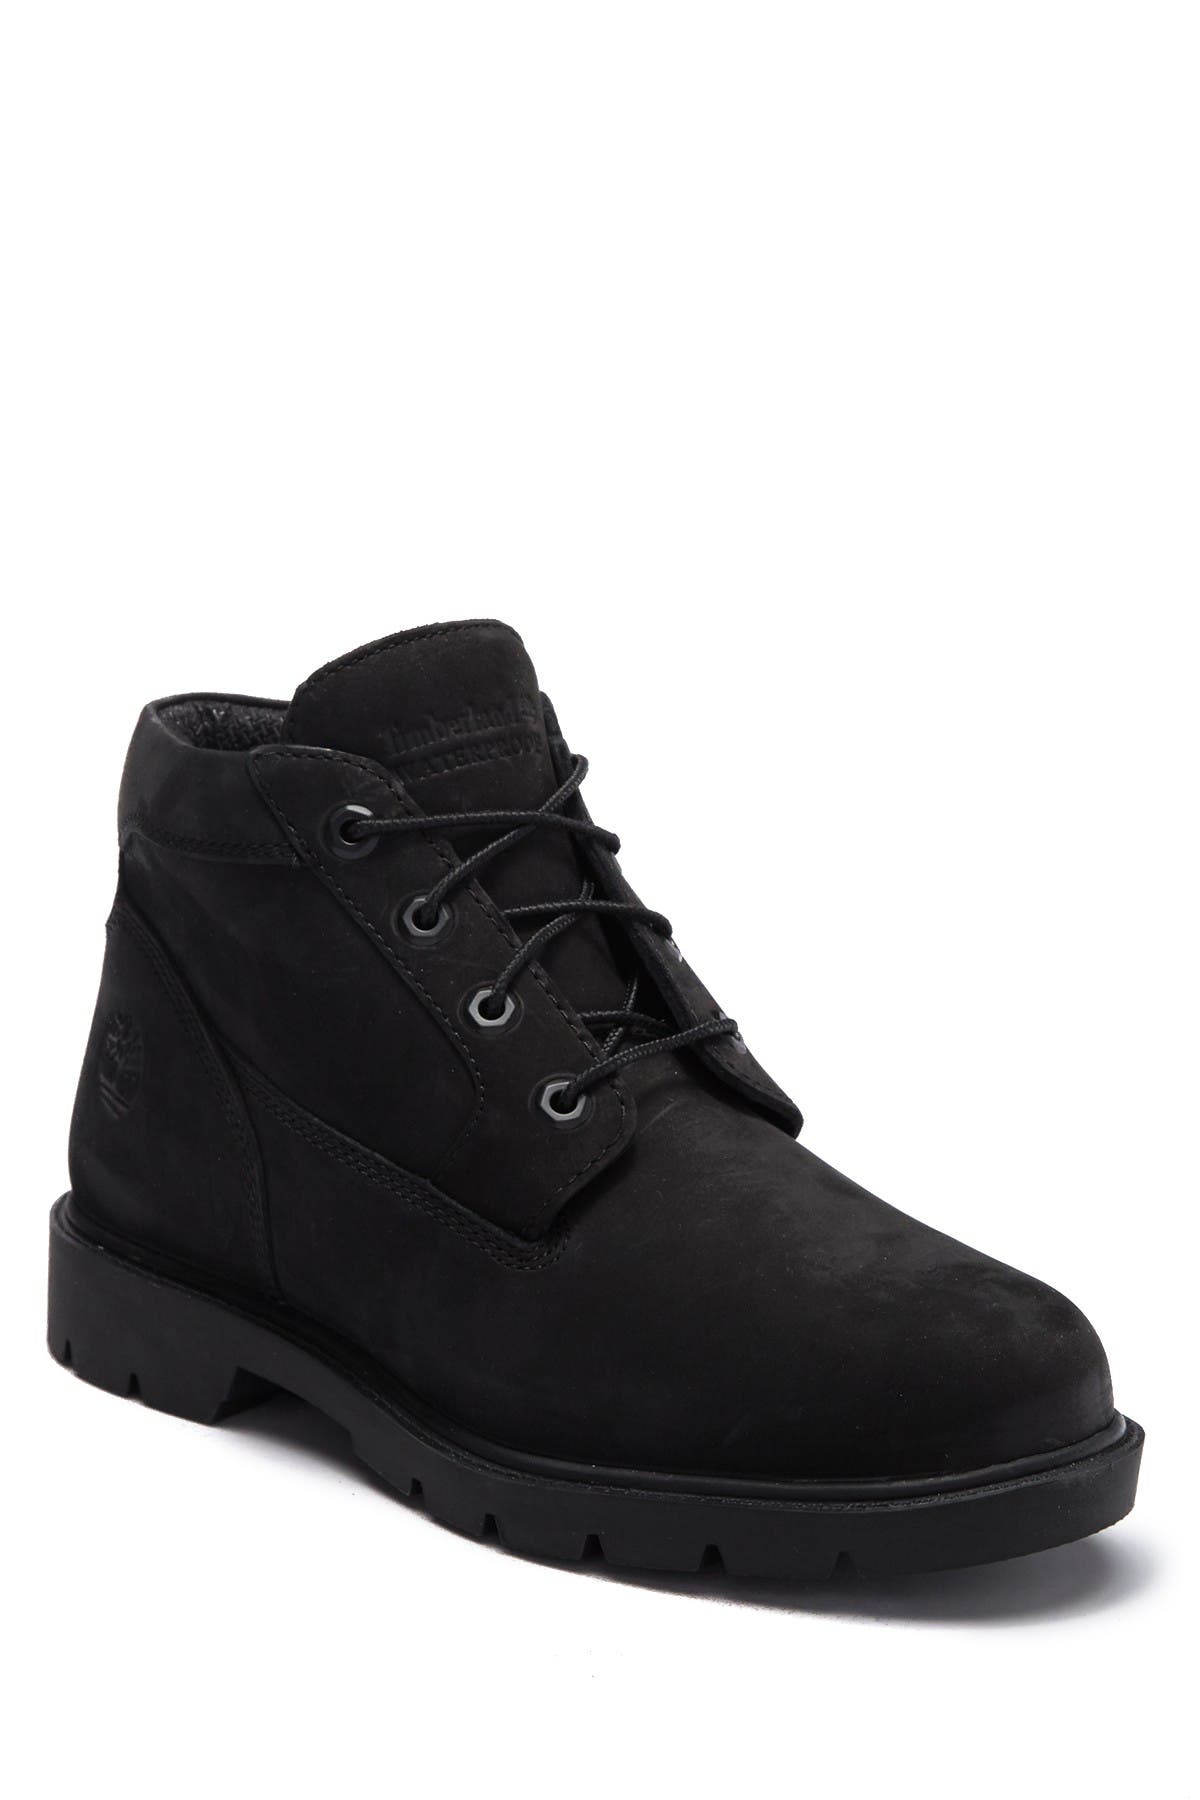 Timberland   Value Suede Chukka Boot